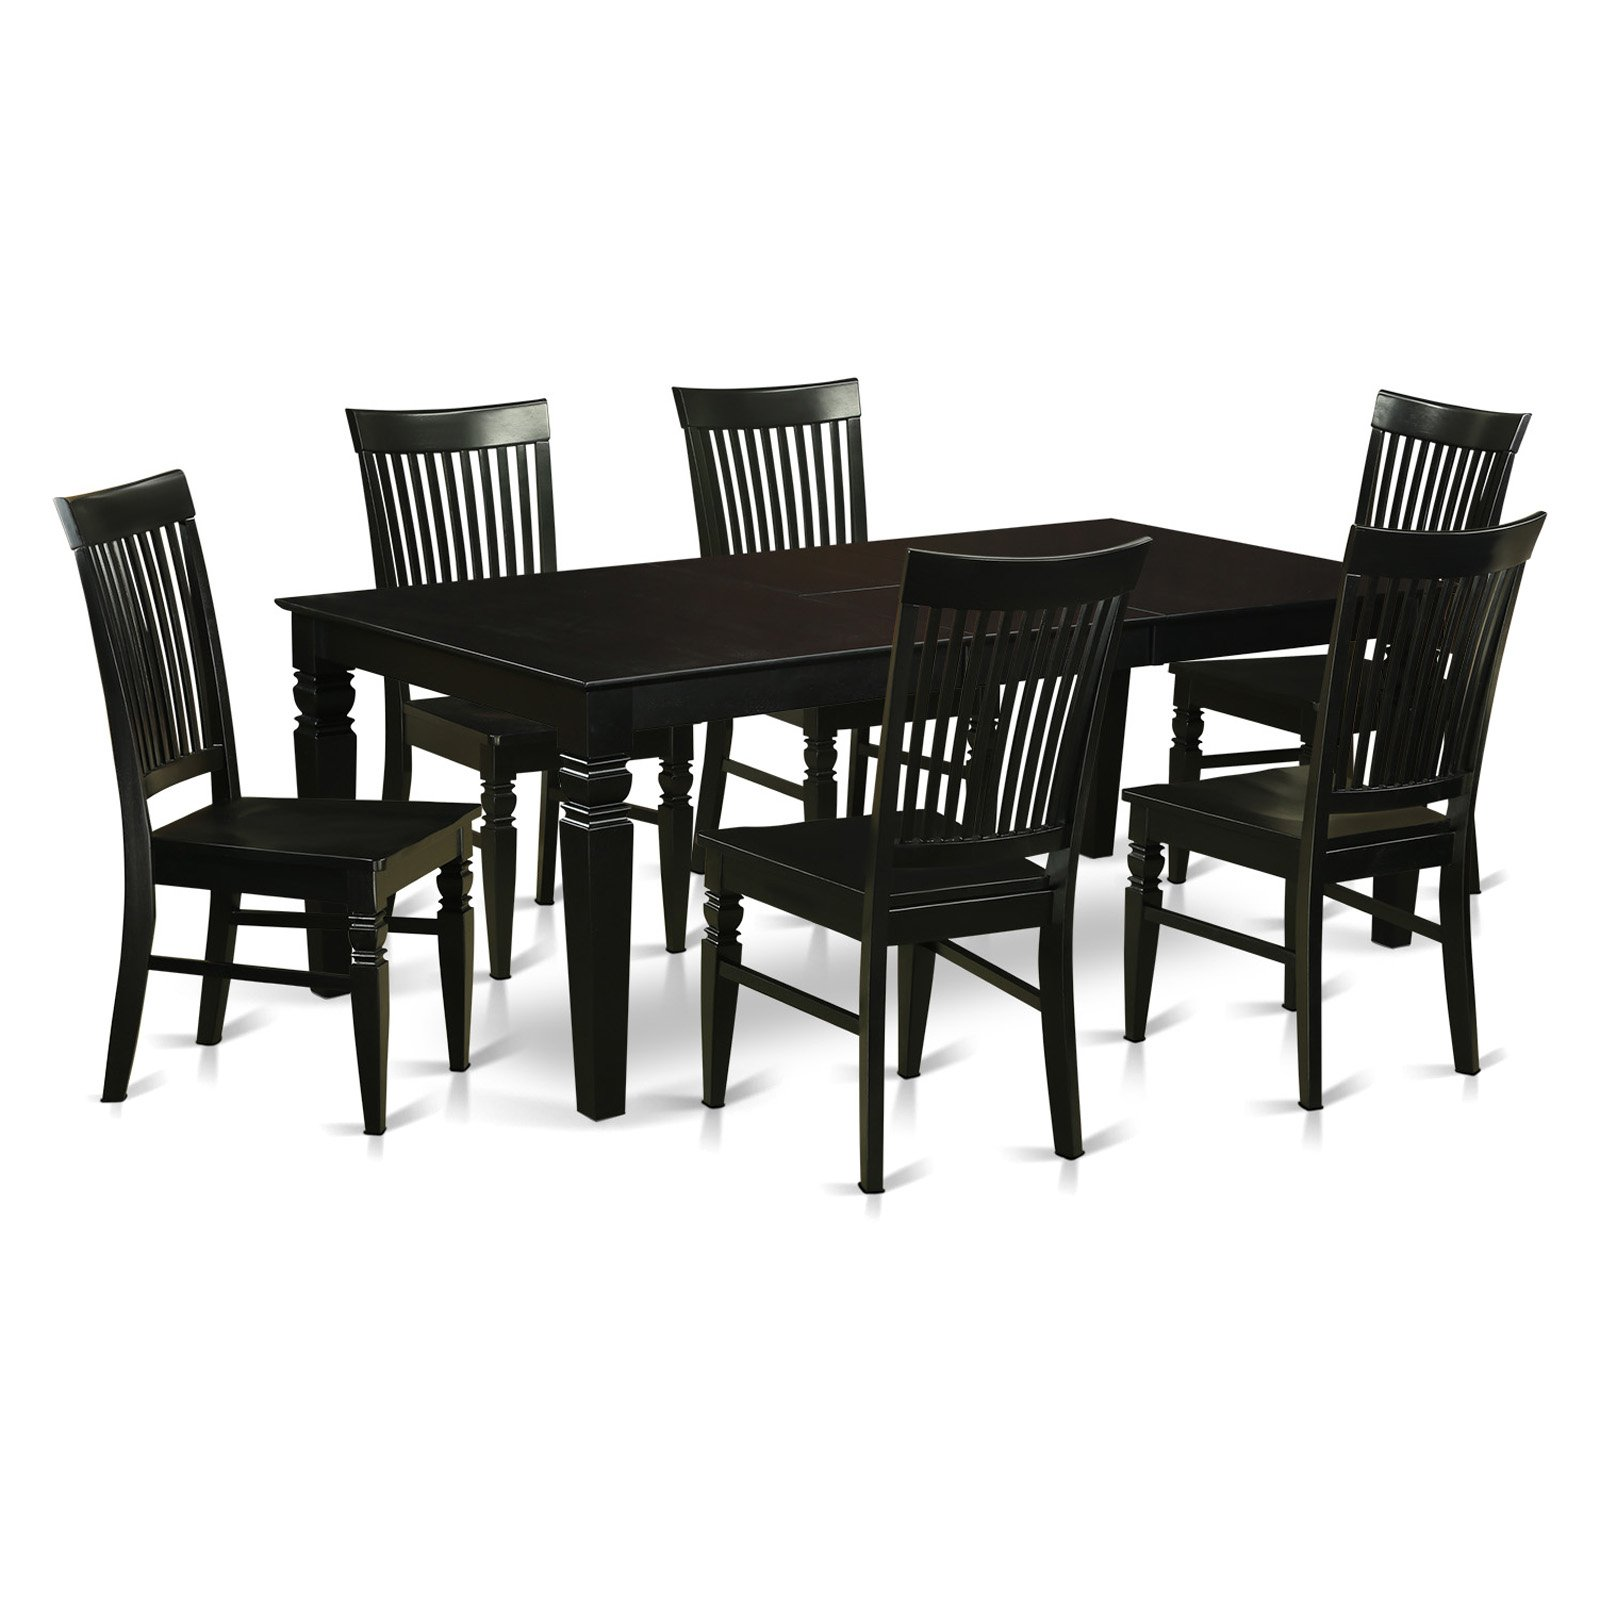 Awe Inspiring East West Furniture Logan 7 Piece Thin Slat Dining Table Set Gmtry Best Dining Table And Chair Ideas Images Gmtryco